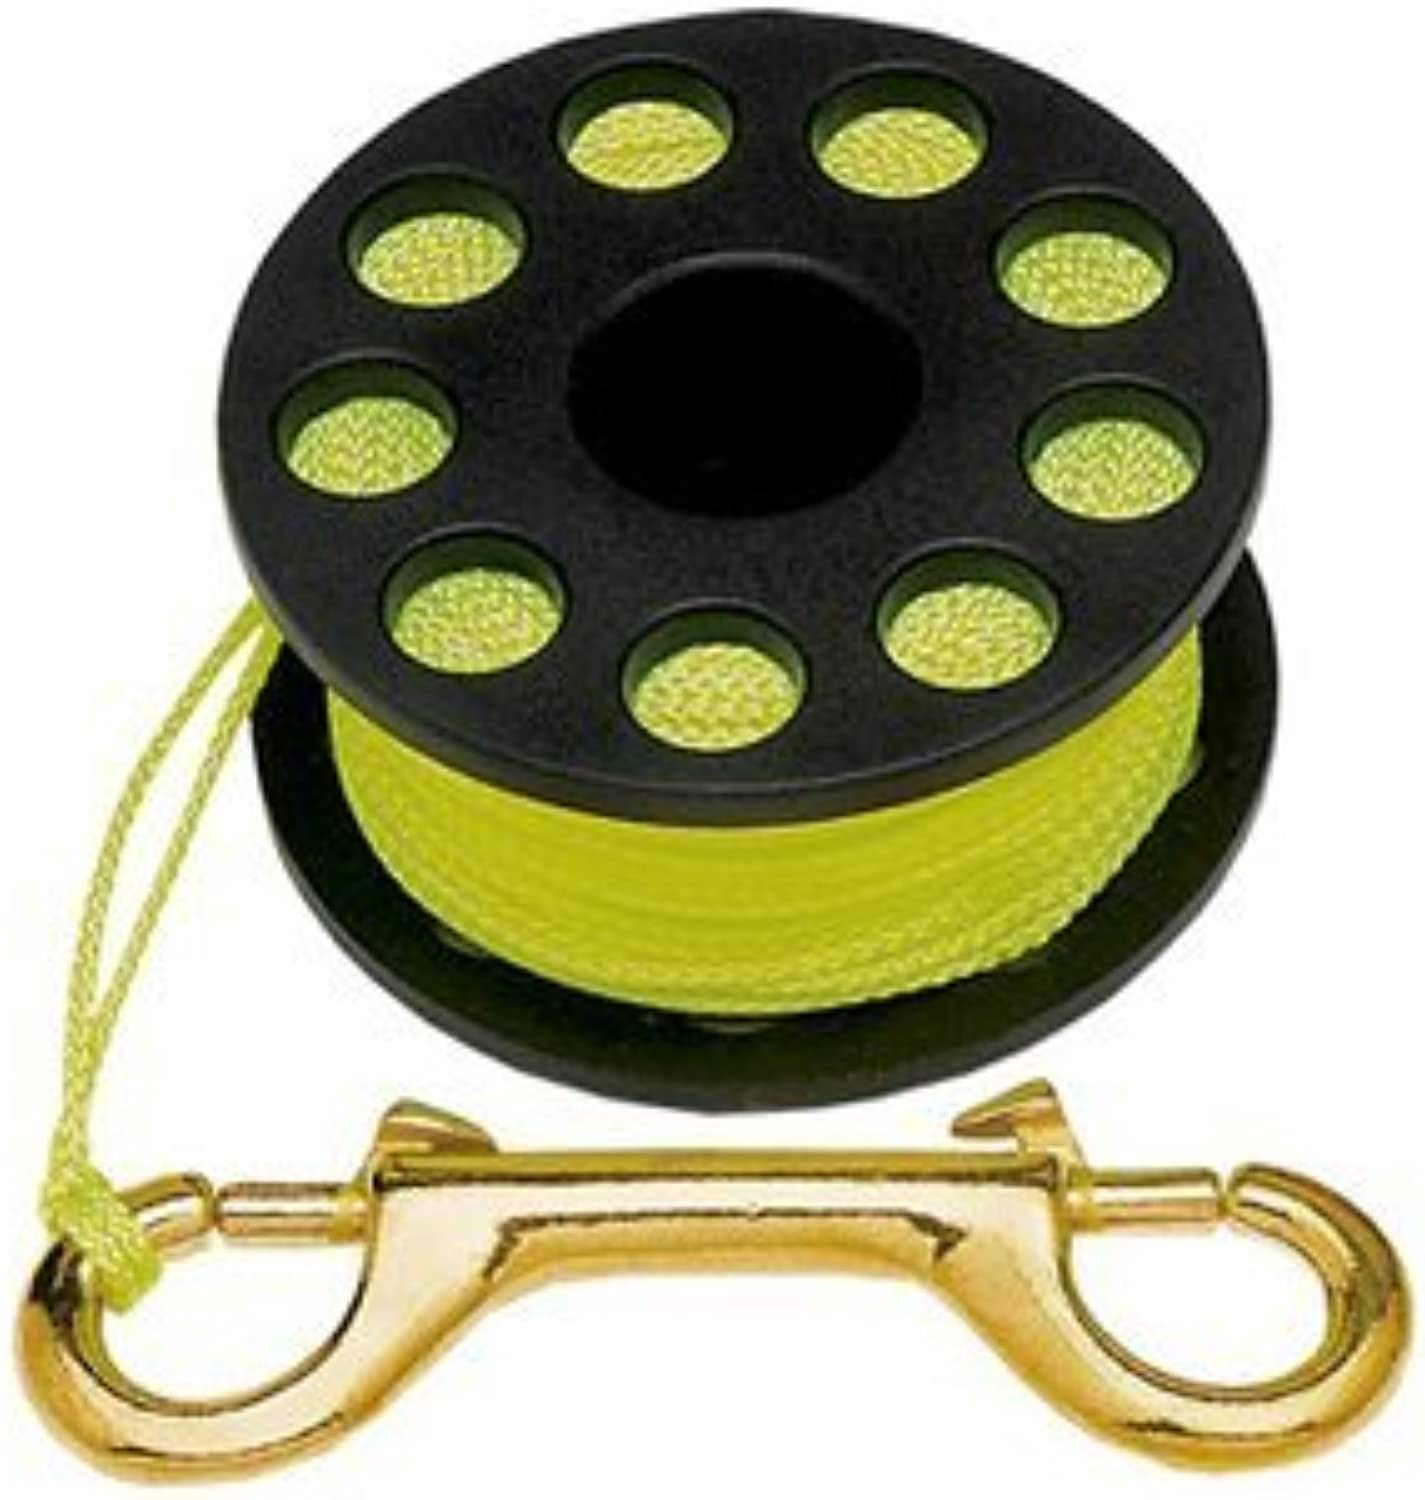 Finger Reel with Brass Clip Wreck Scuba Diving Tech Spool 3 Sizes, LARGE 160 FT by Storm Accessories